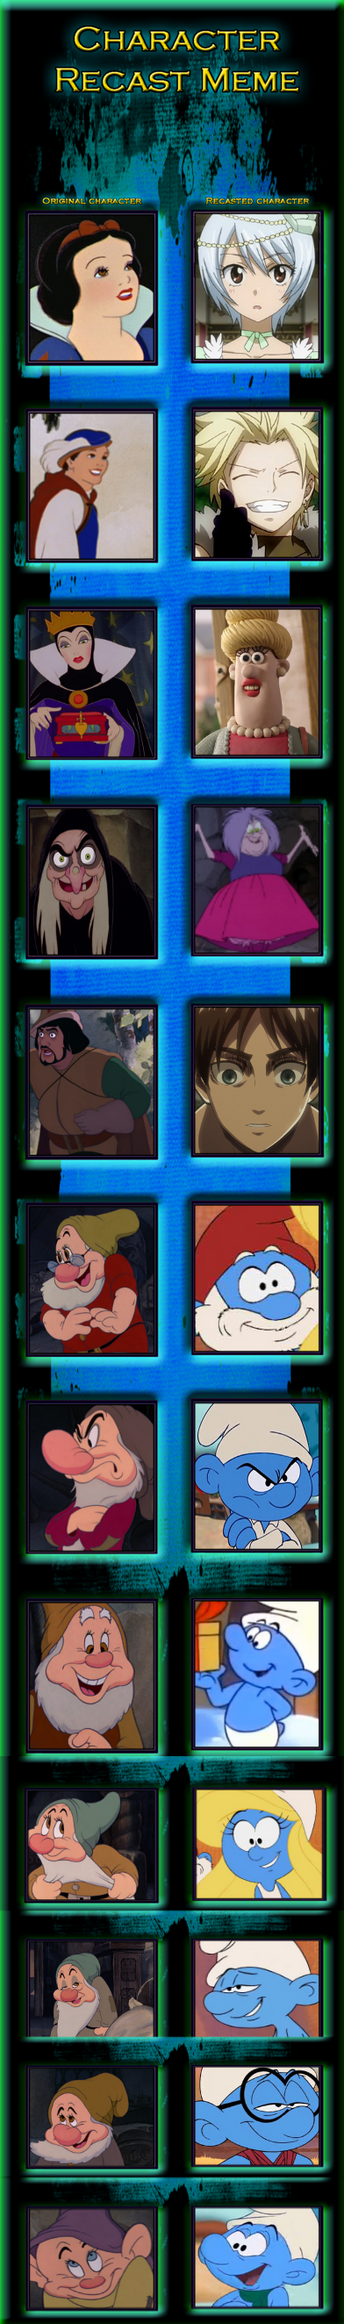 Yukino and the seven smurfs- Recast MEME by Holly2001